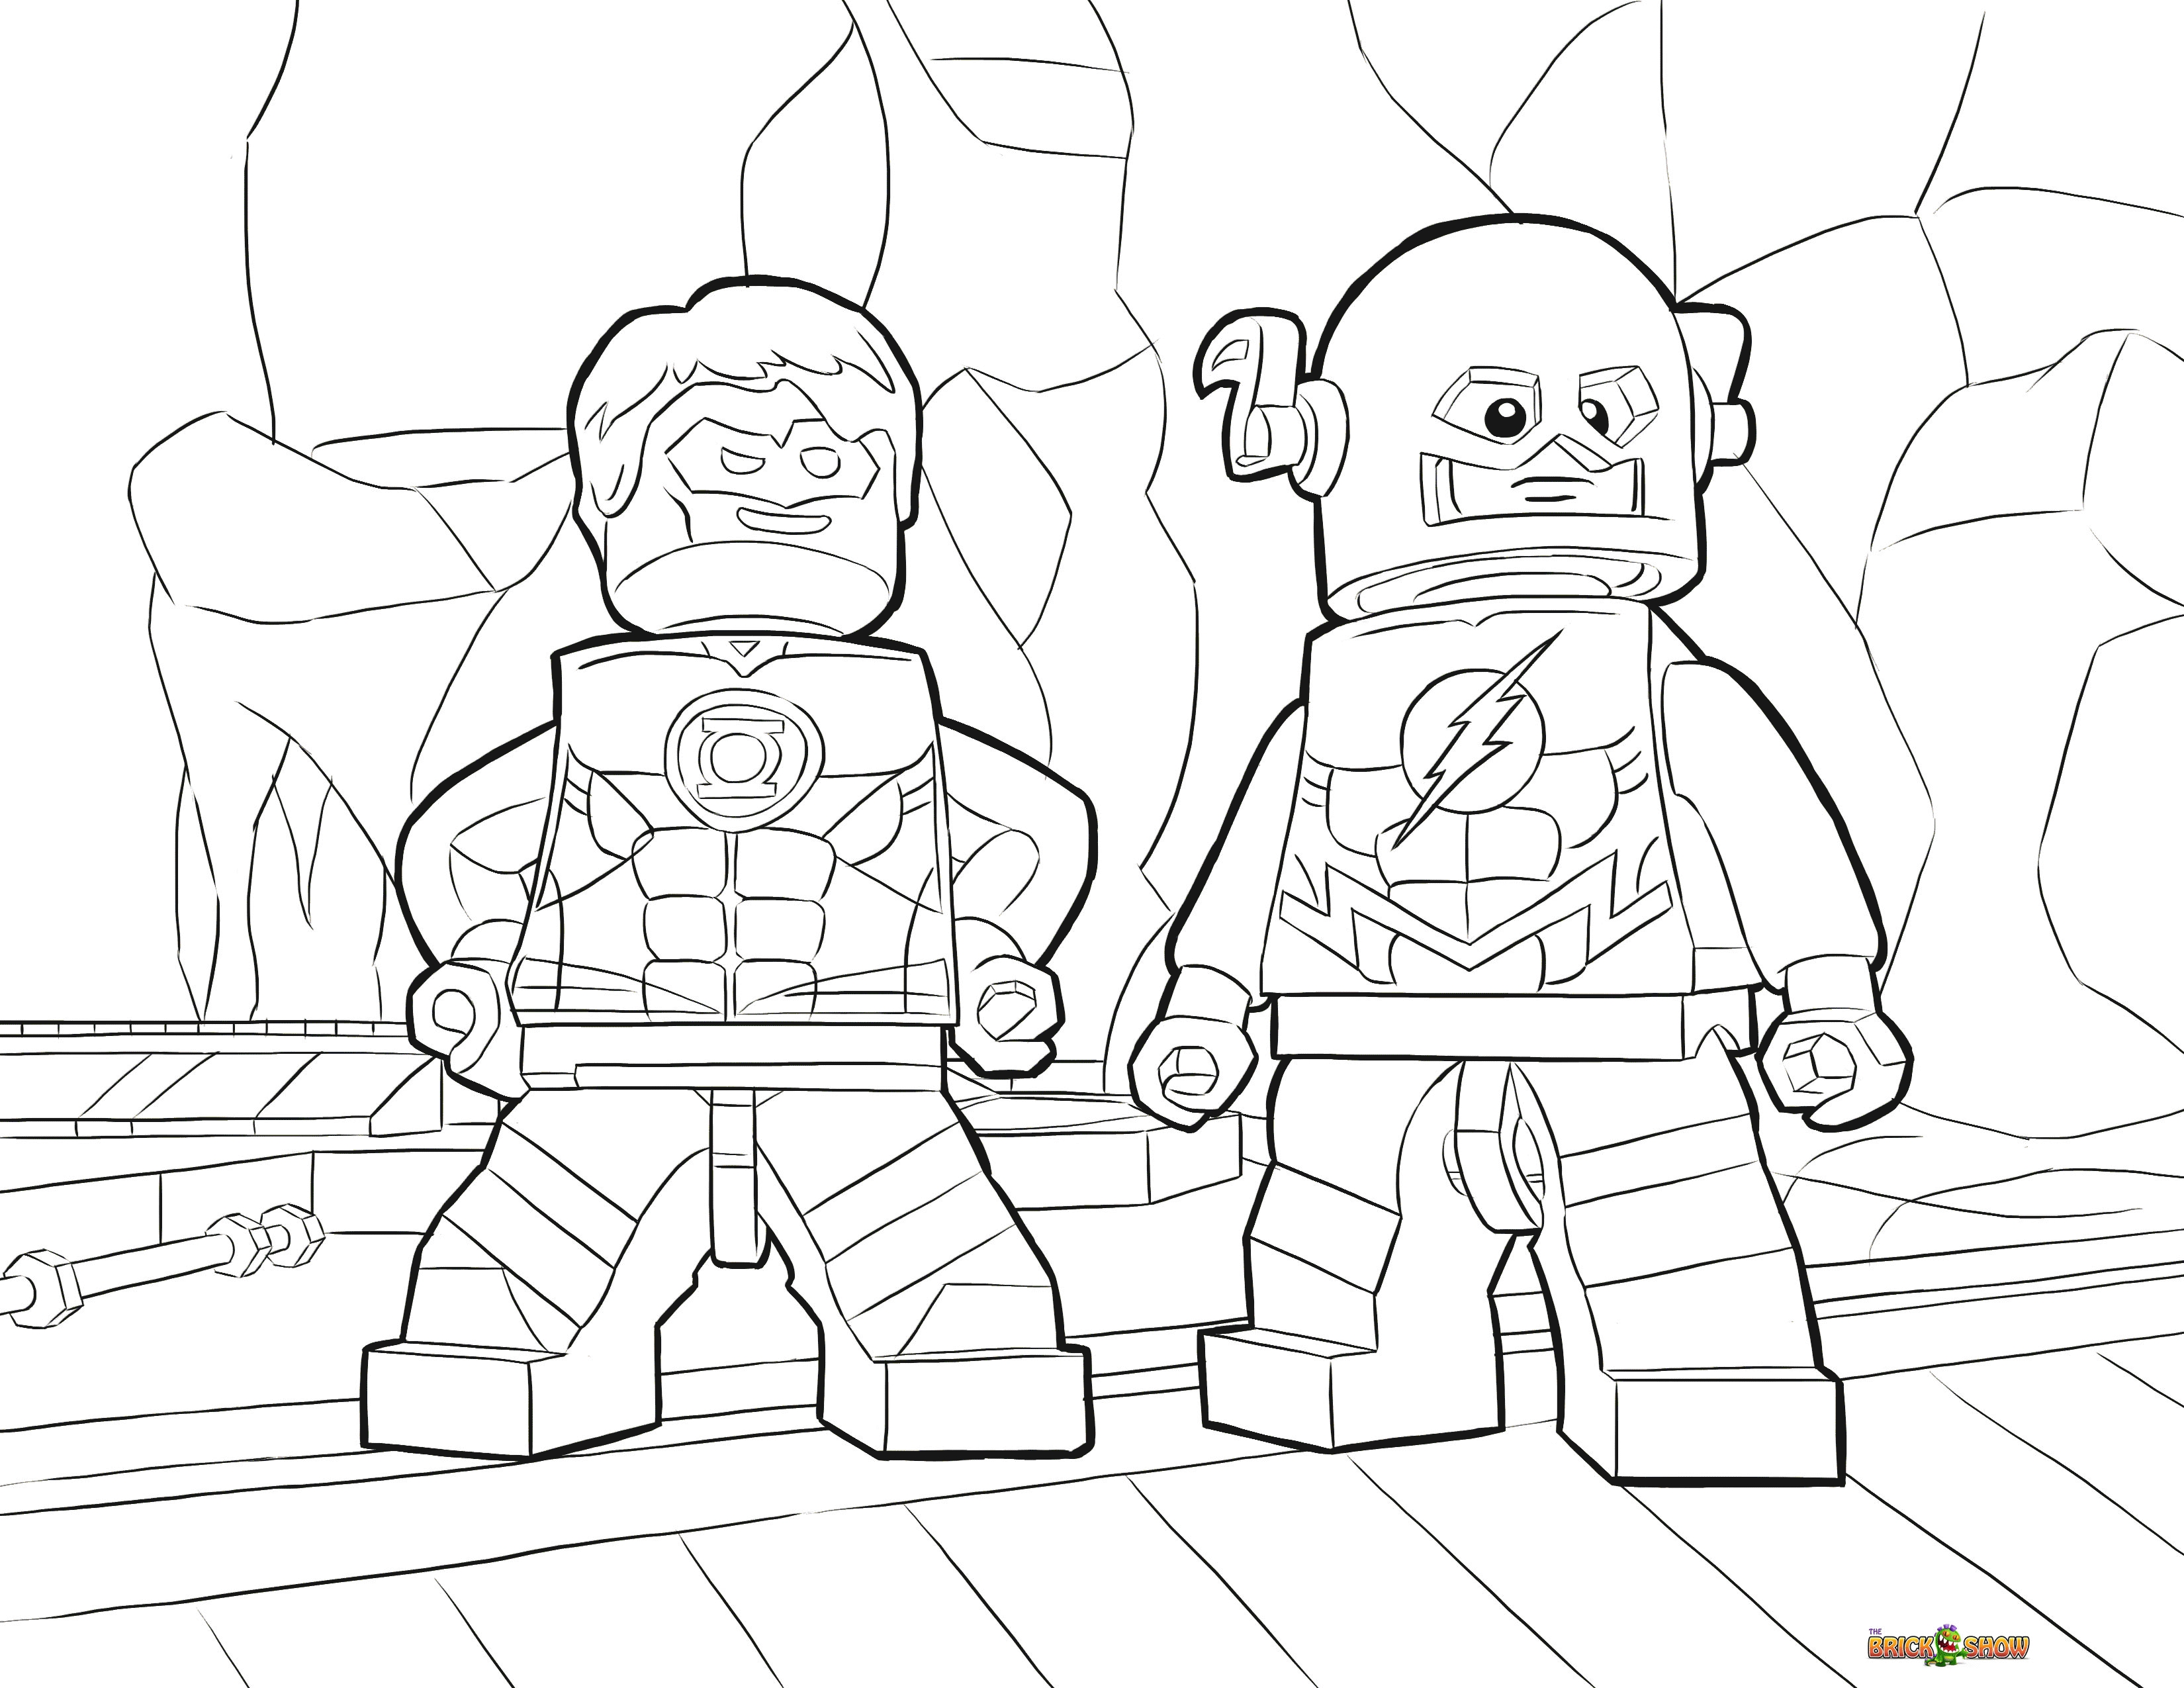 28 Justice League Coloring Pages Compilation | FREE COLORING PAGES